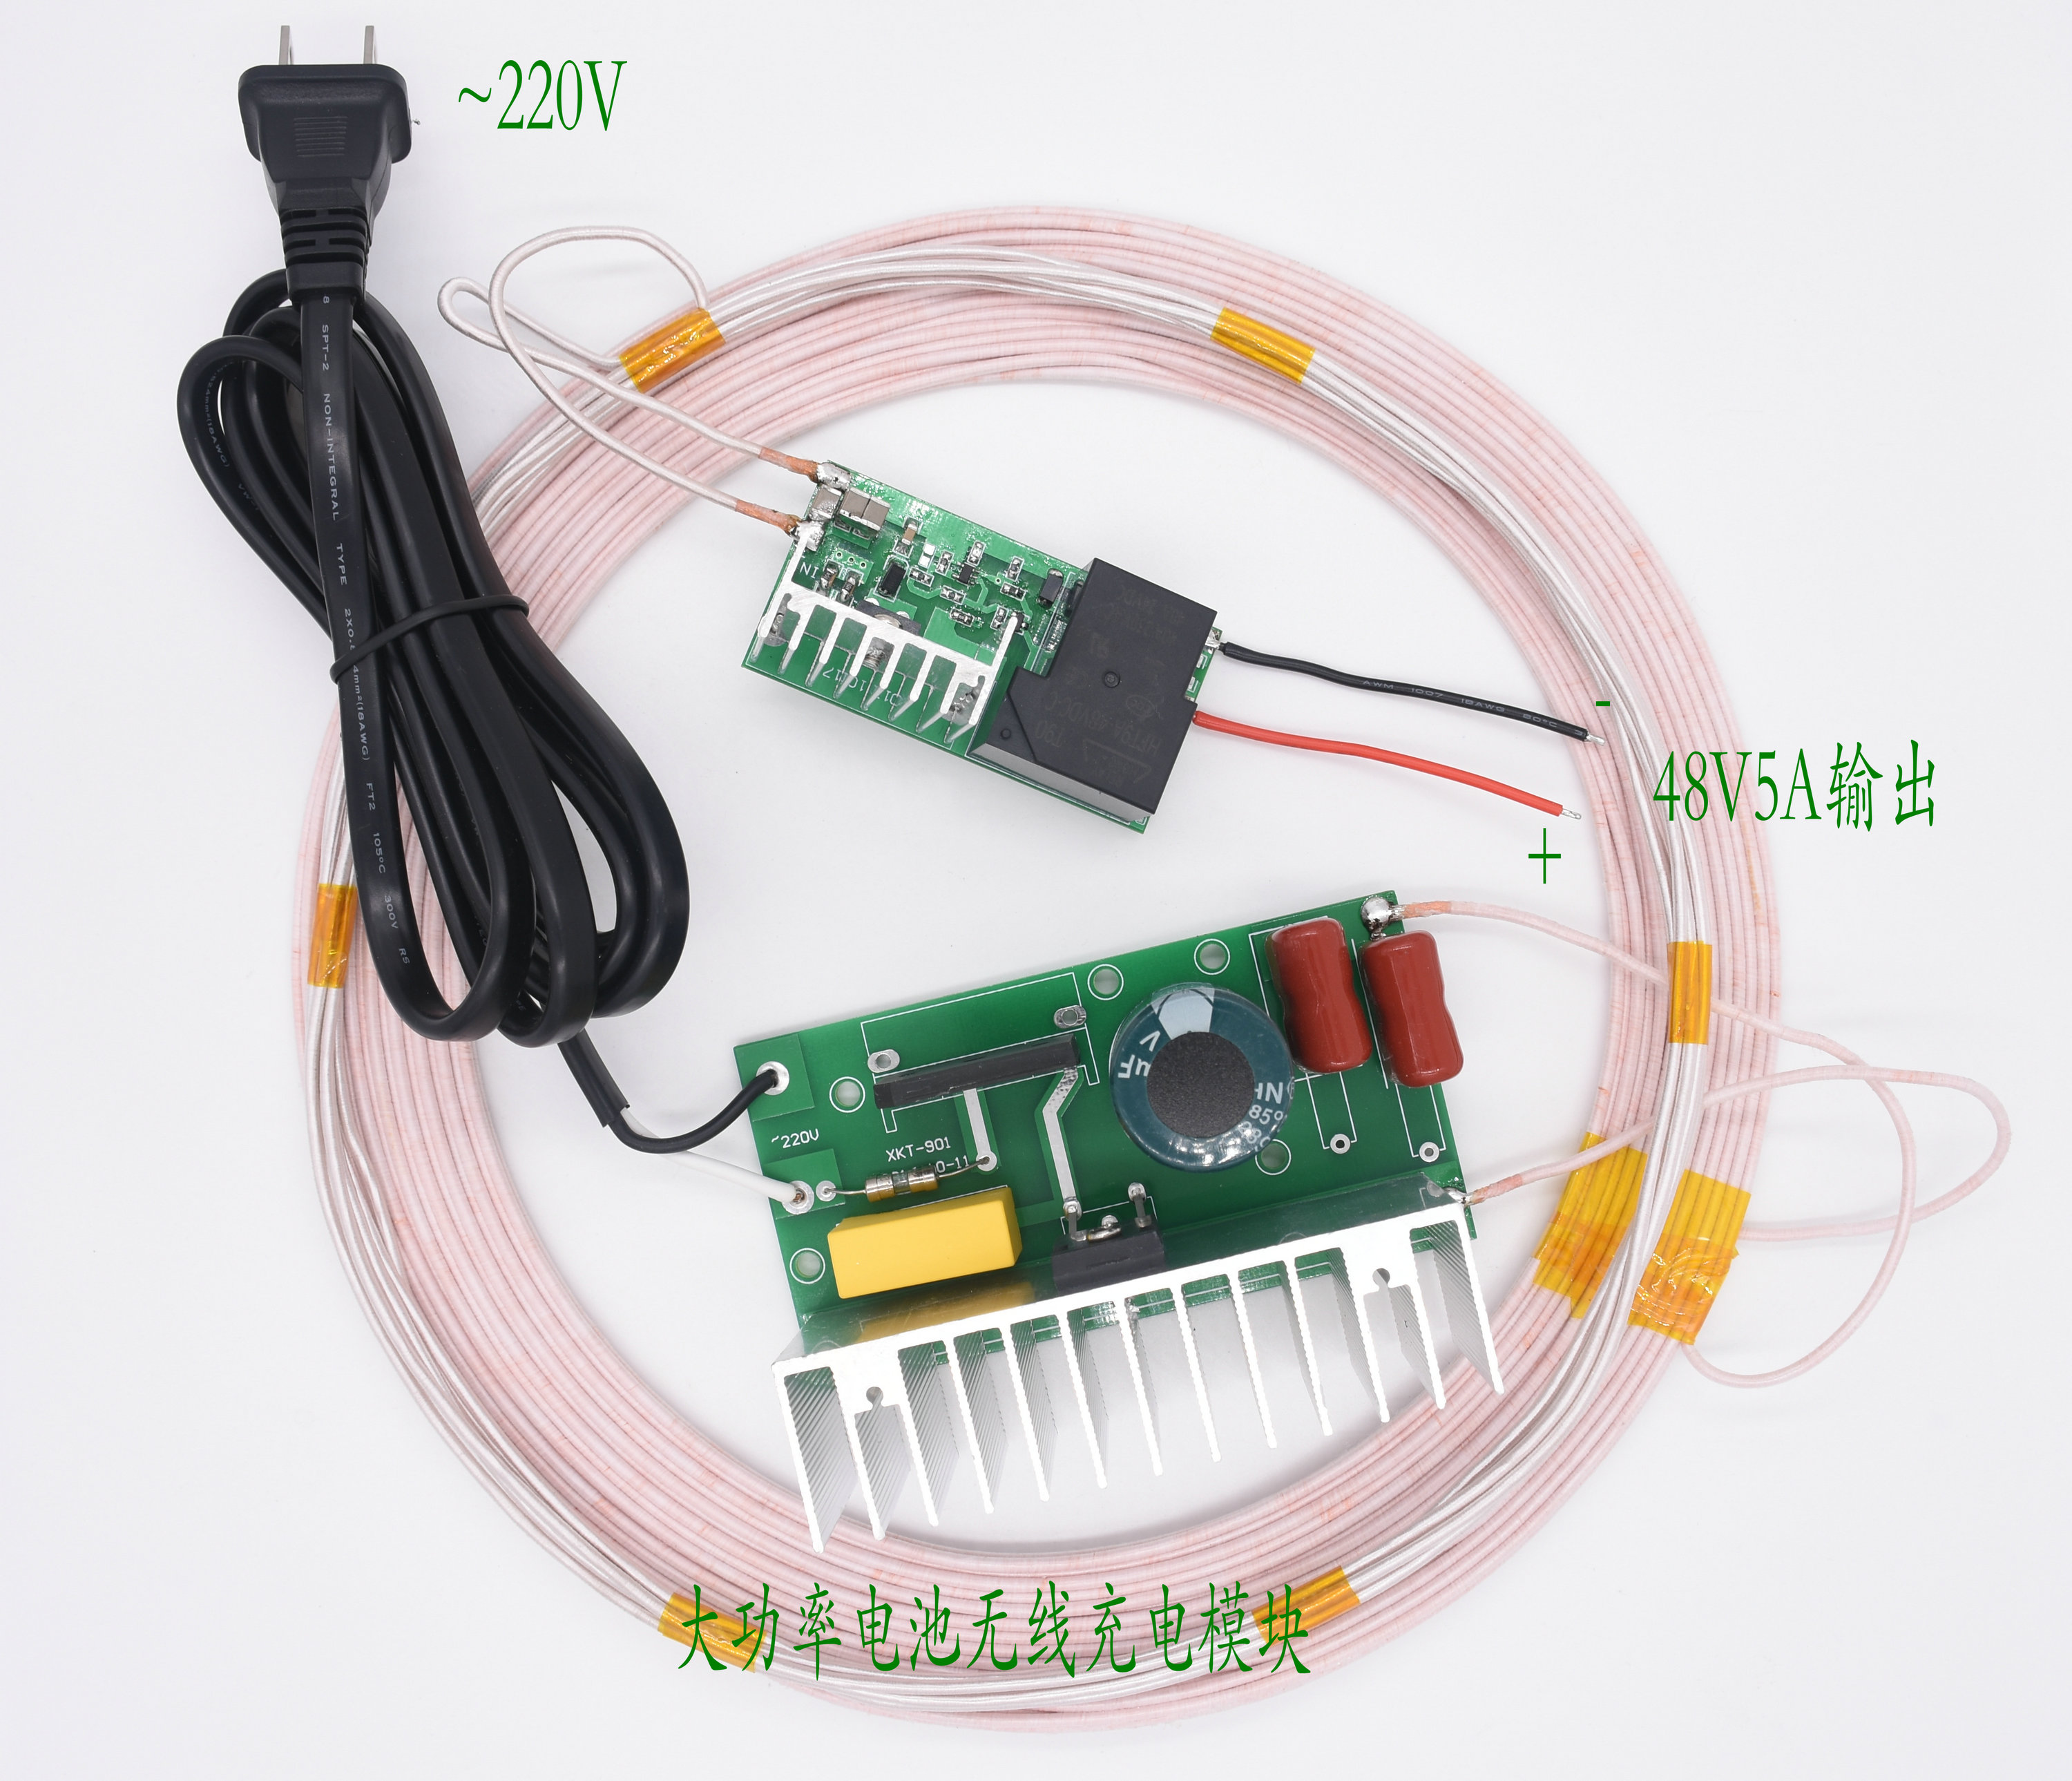 48V 5A High Power Wireless Charging Module, Wireless Transmission Module, Wireless Power Supply Module XKT901-06 wireless charging wireless power supply wireless transmission module high current module xkt412 02